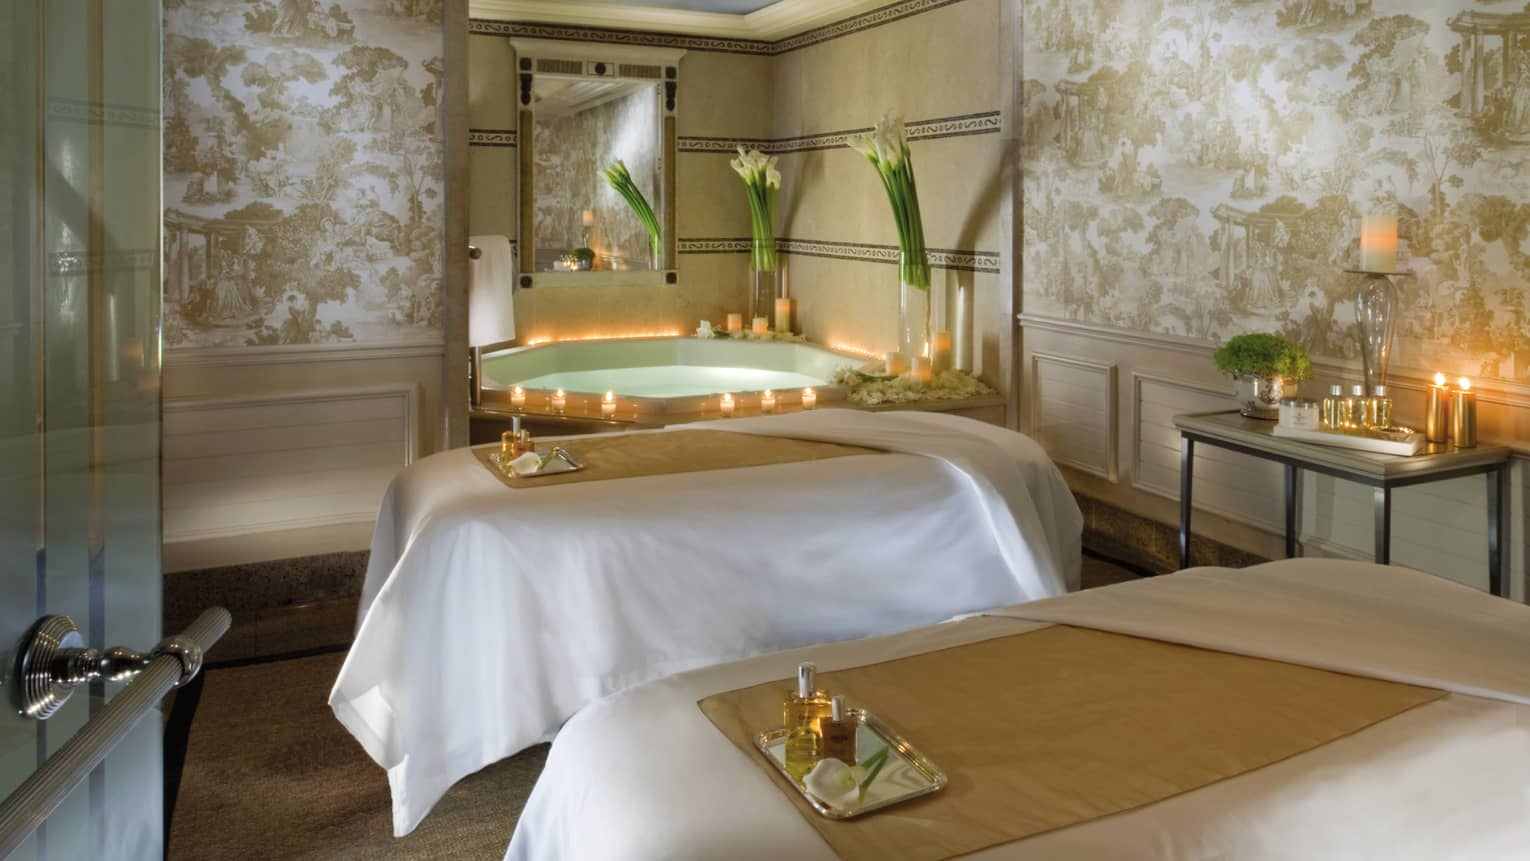 Couples massage beds with spa trays by tub lined with candles